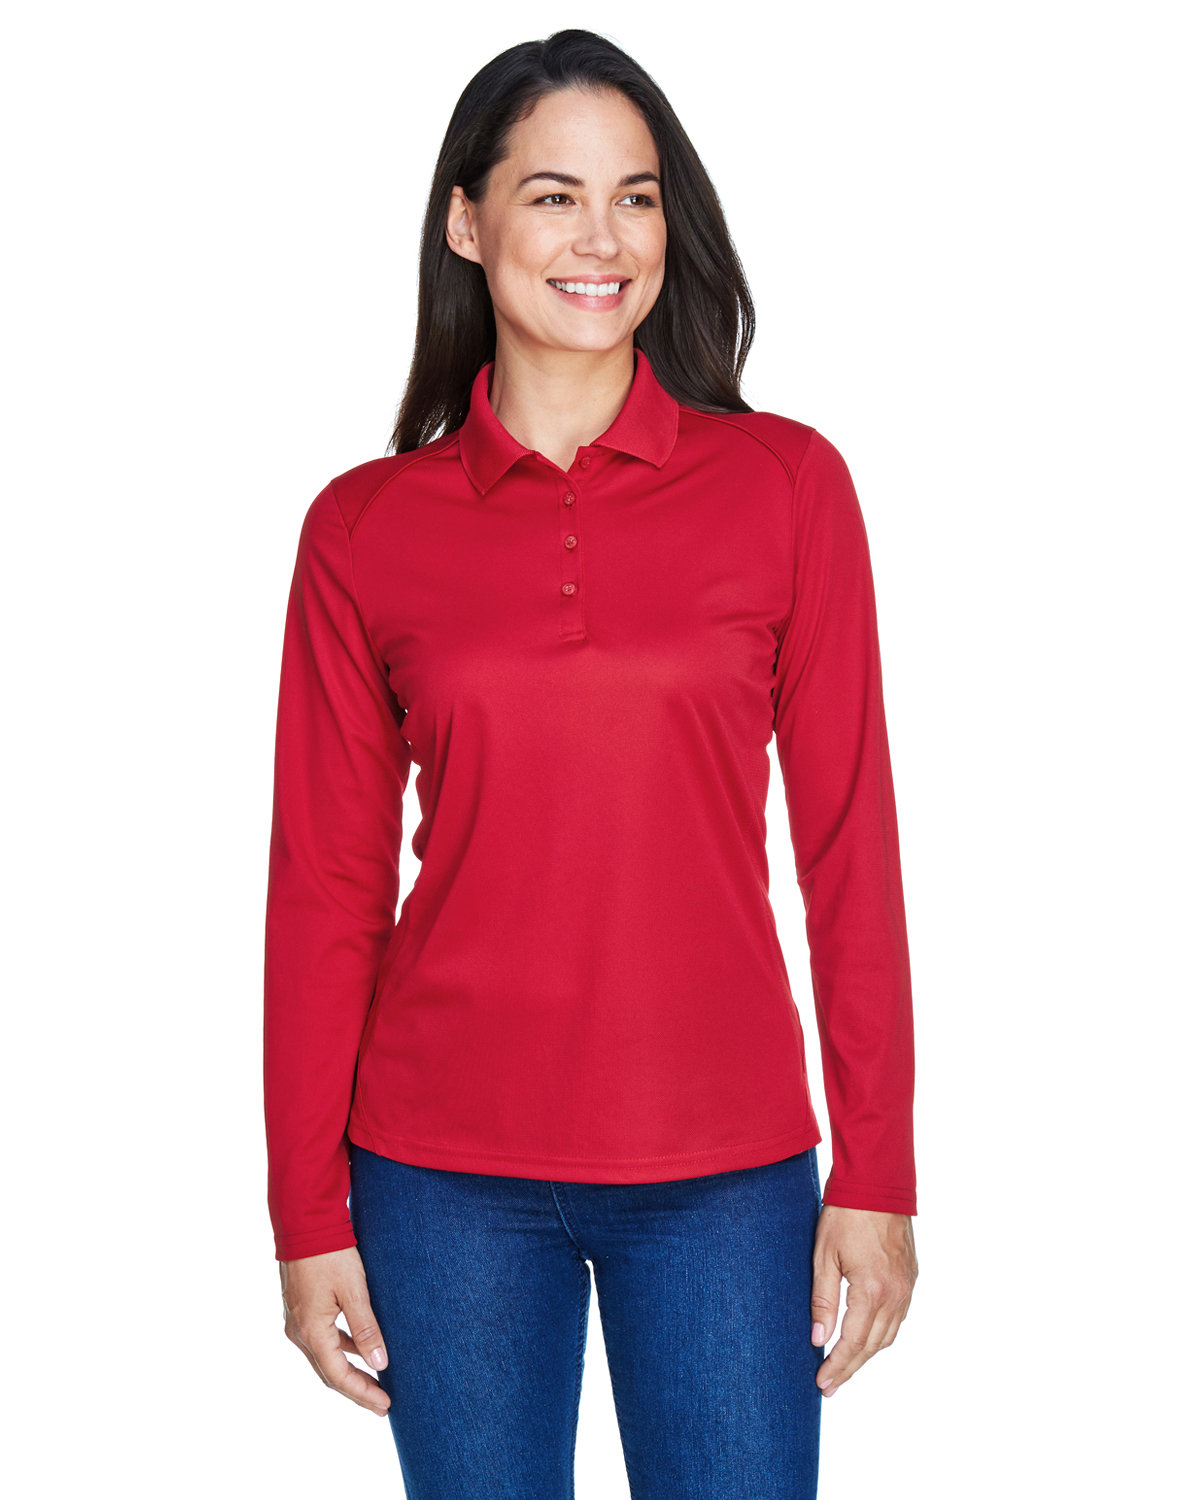 Extreme Ladies' Eperformance™ Snag Protection Long-Sleeve Polo CLASSIC RED